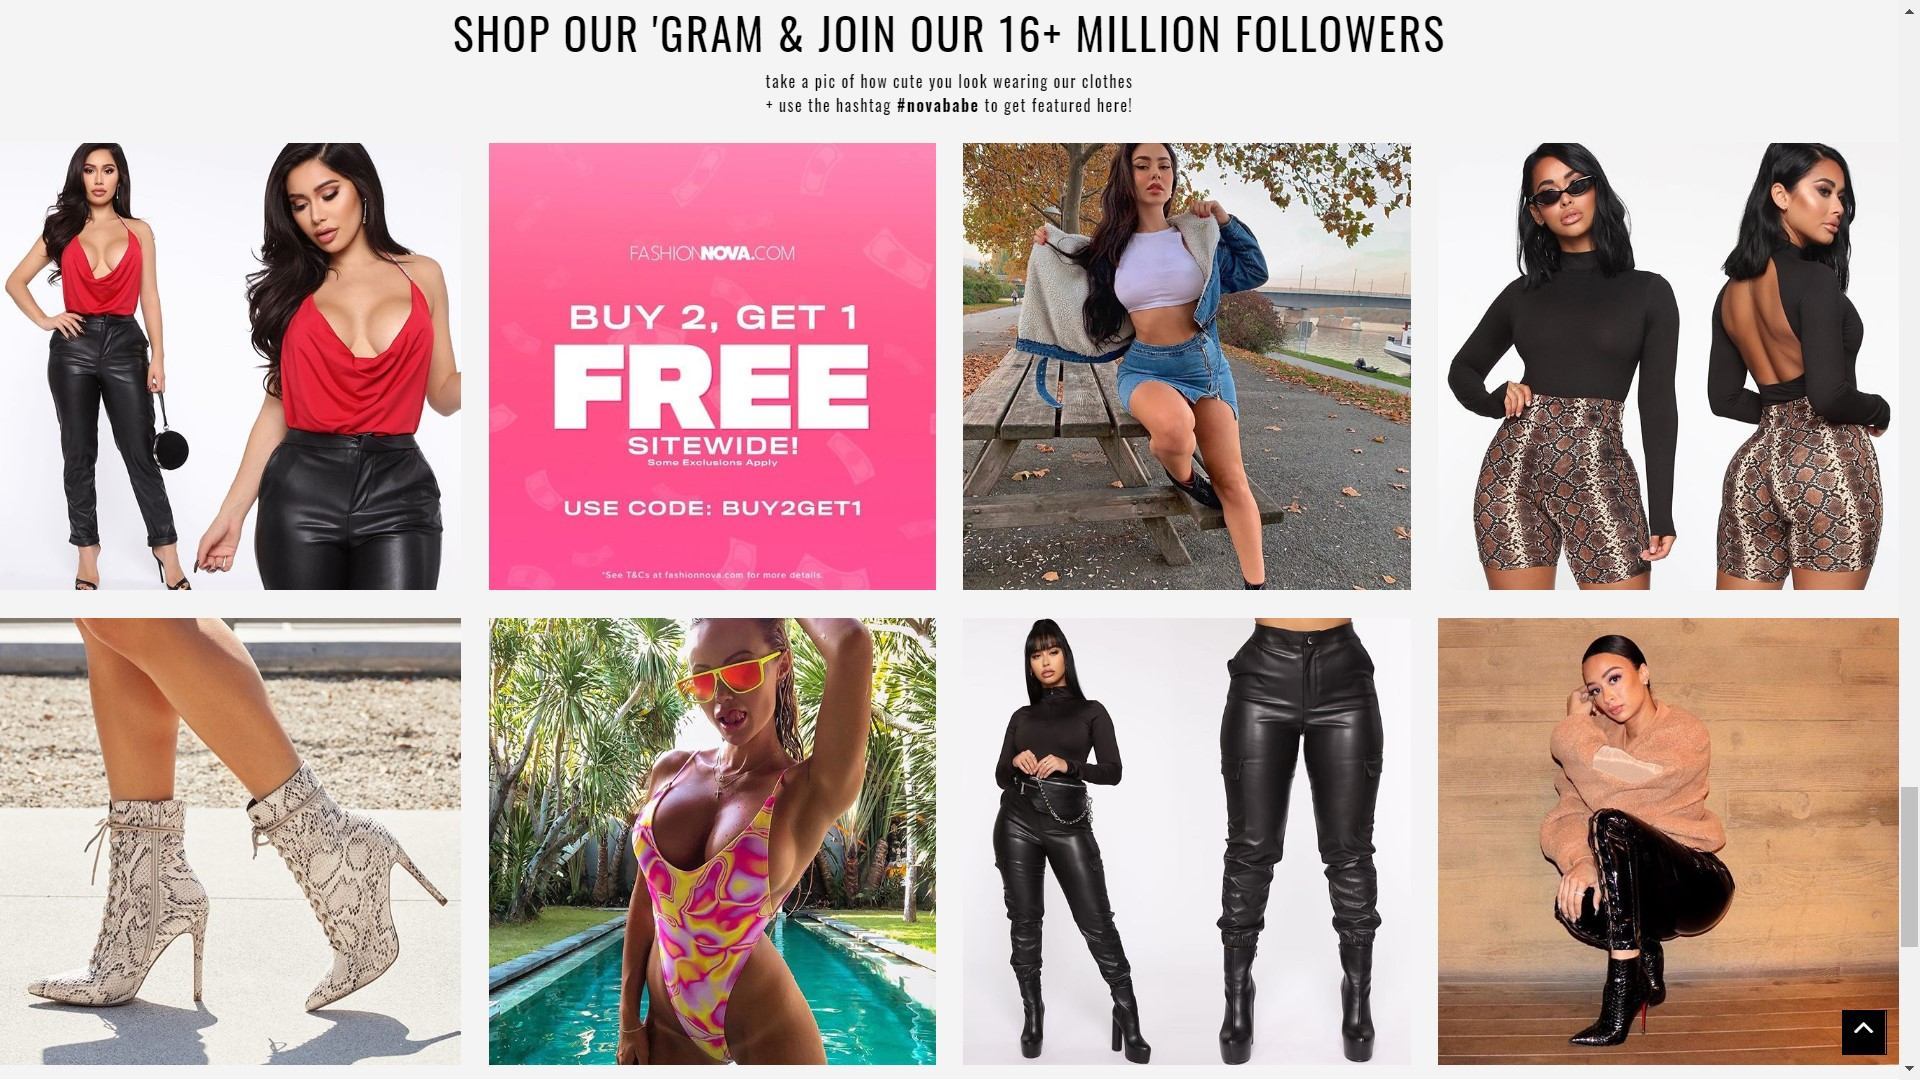 Shopify stores like Fashion Nova display its Instagram feed at the bottom of their home page.